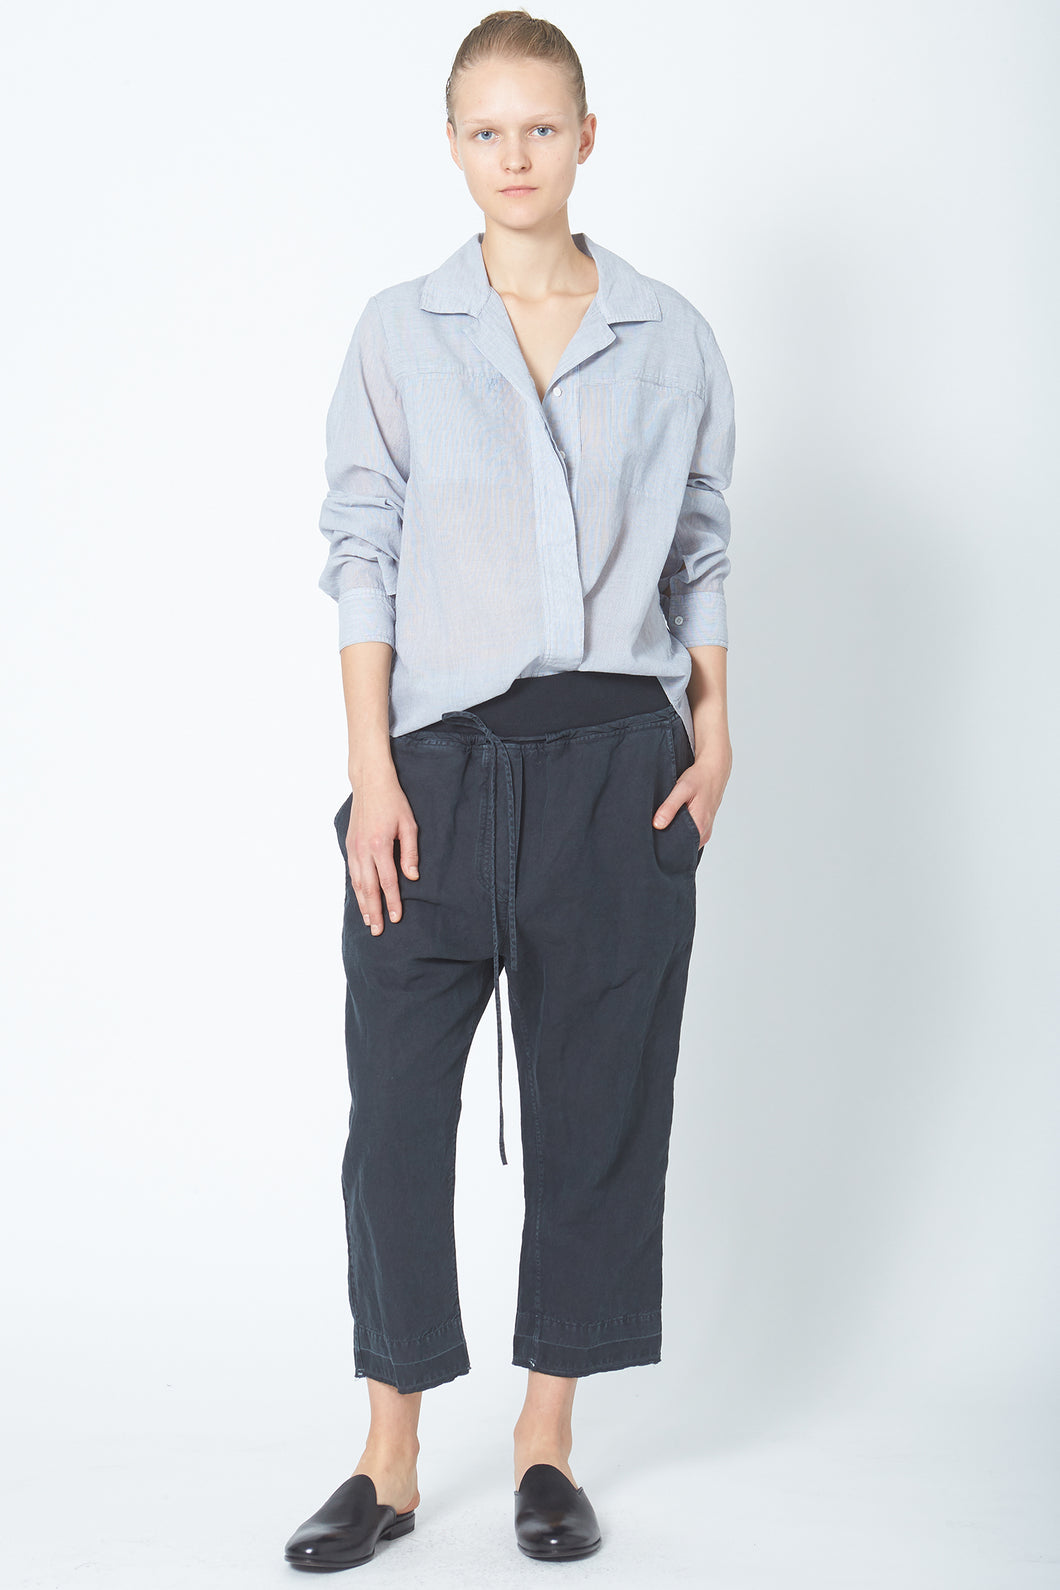 KES Drop Crotch Pant w/ Rib - Stone Washed Blue